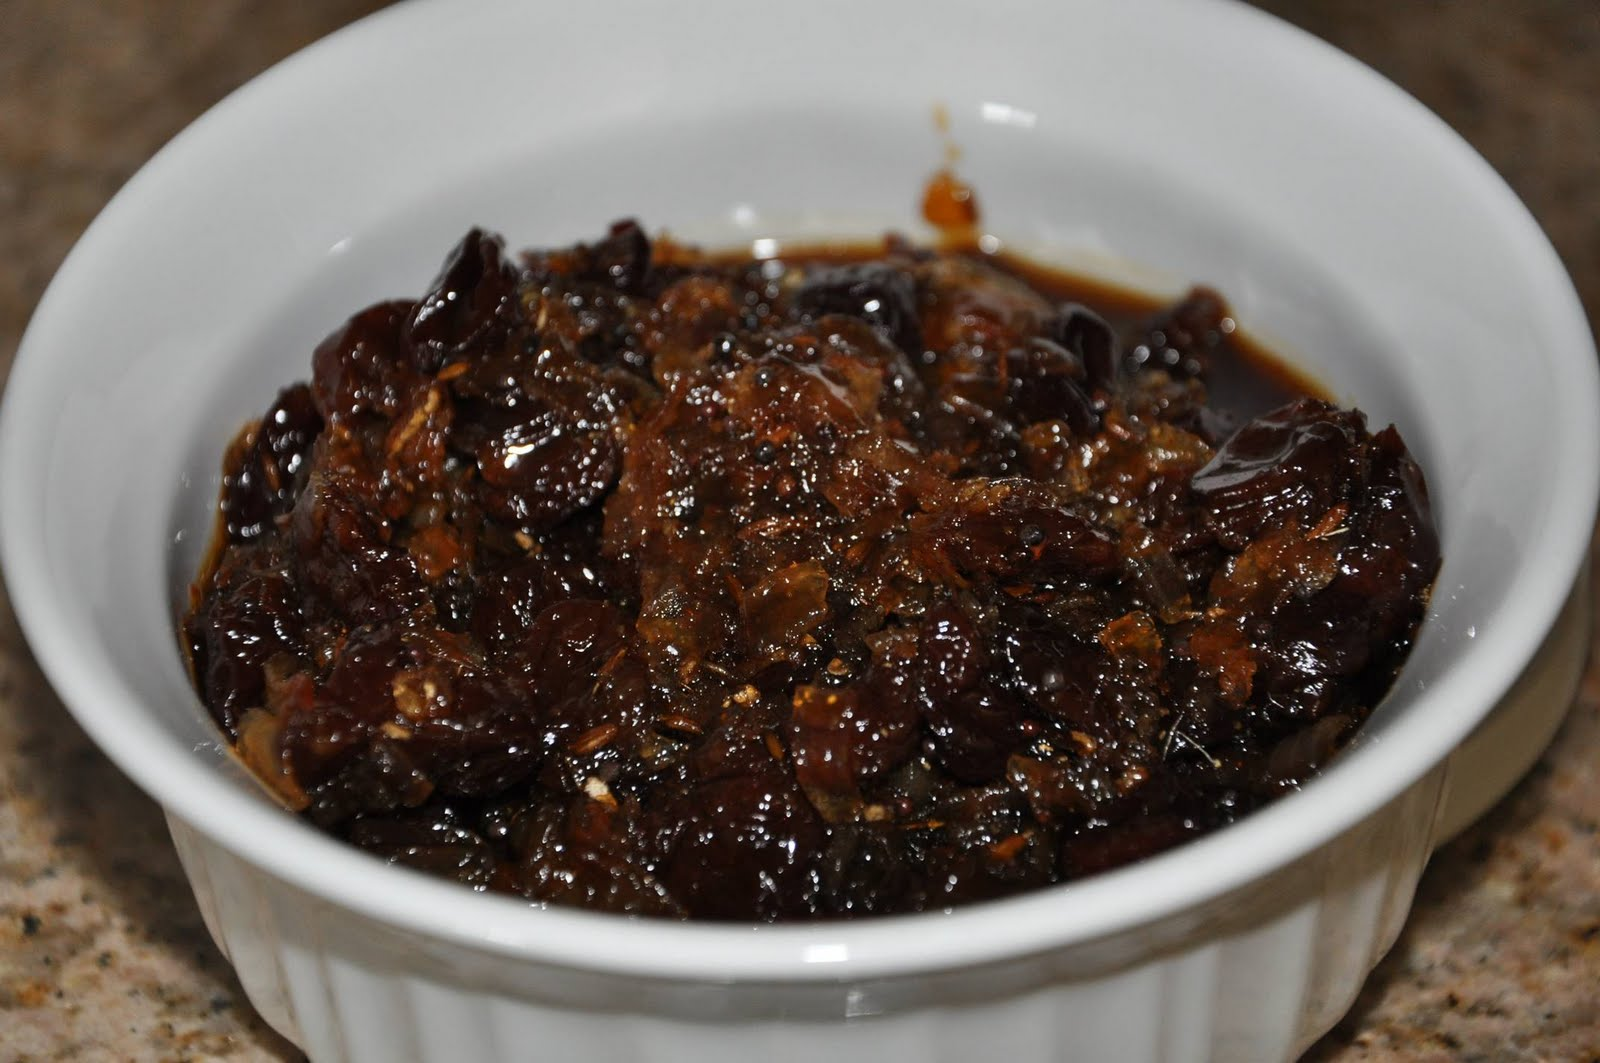 ... - Rajasthan A State in Western India: Dried Cherry and Onion Chutney